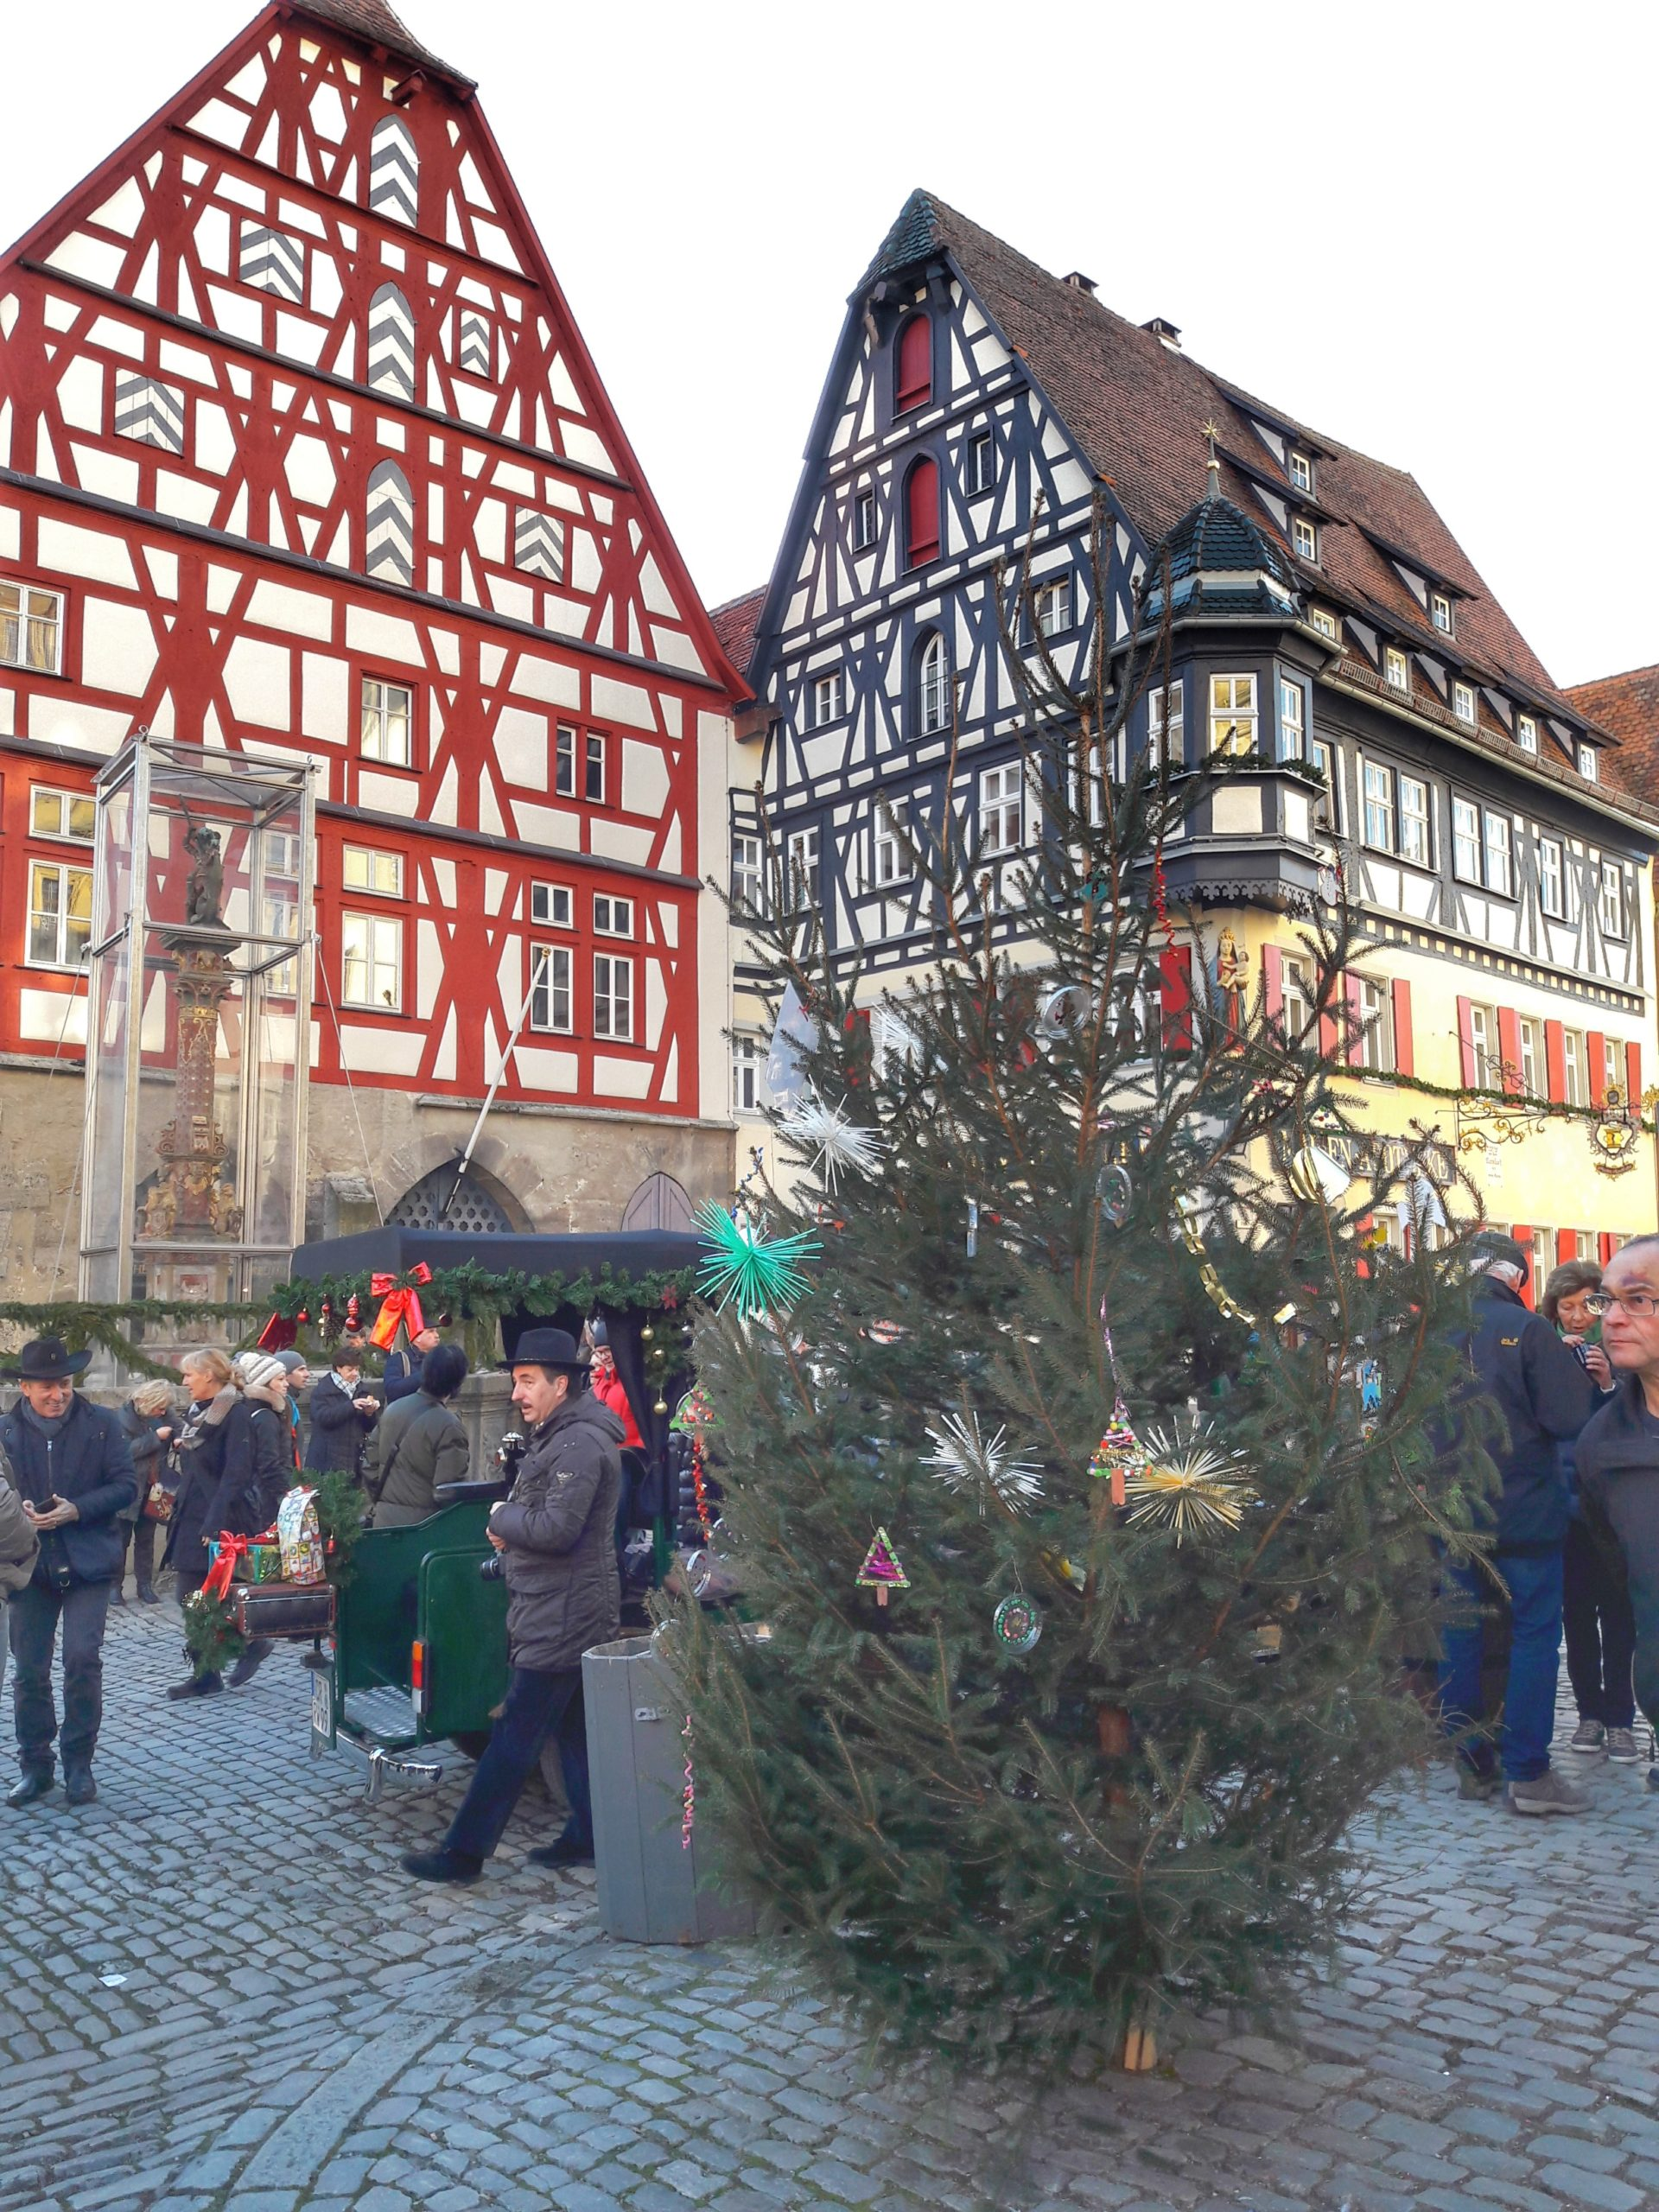 best place in germany for christmas: Rothenburg